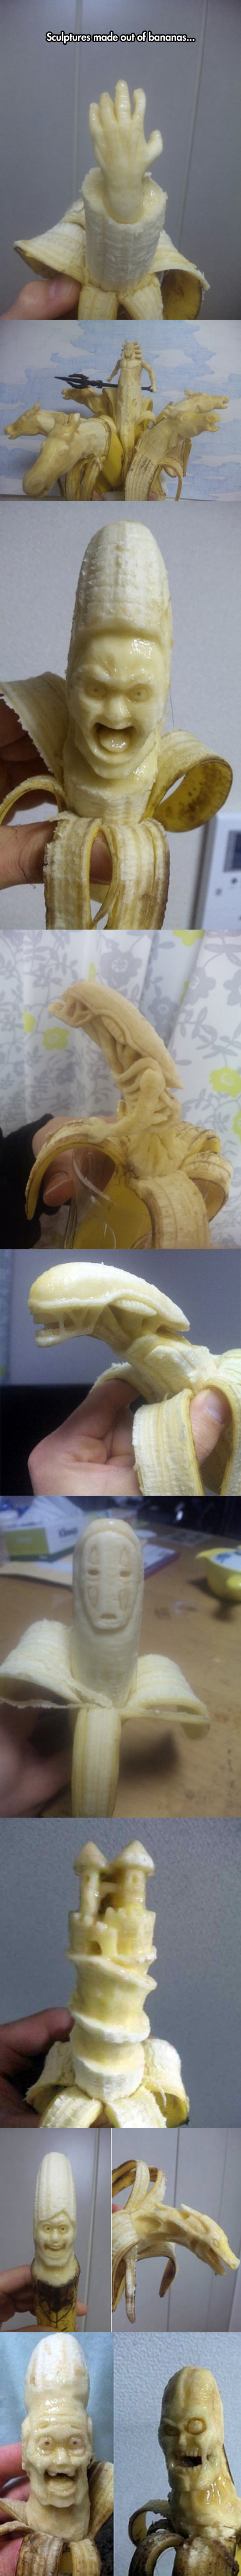 Now This Is Bananas